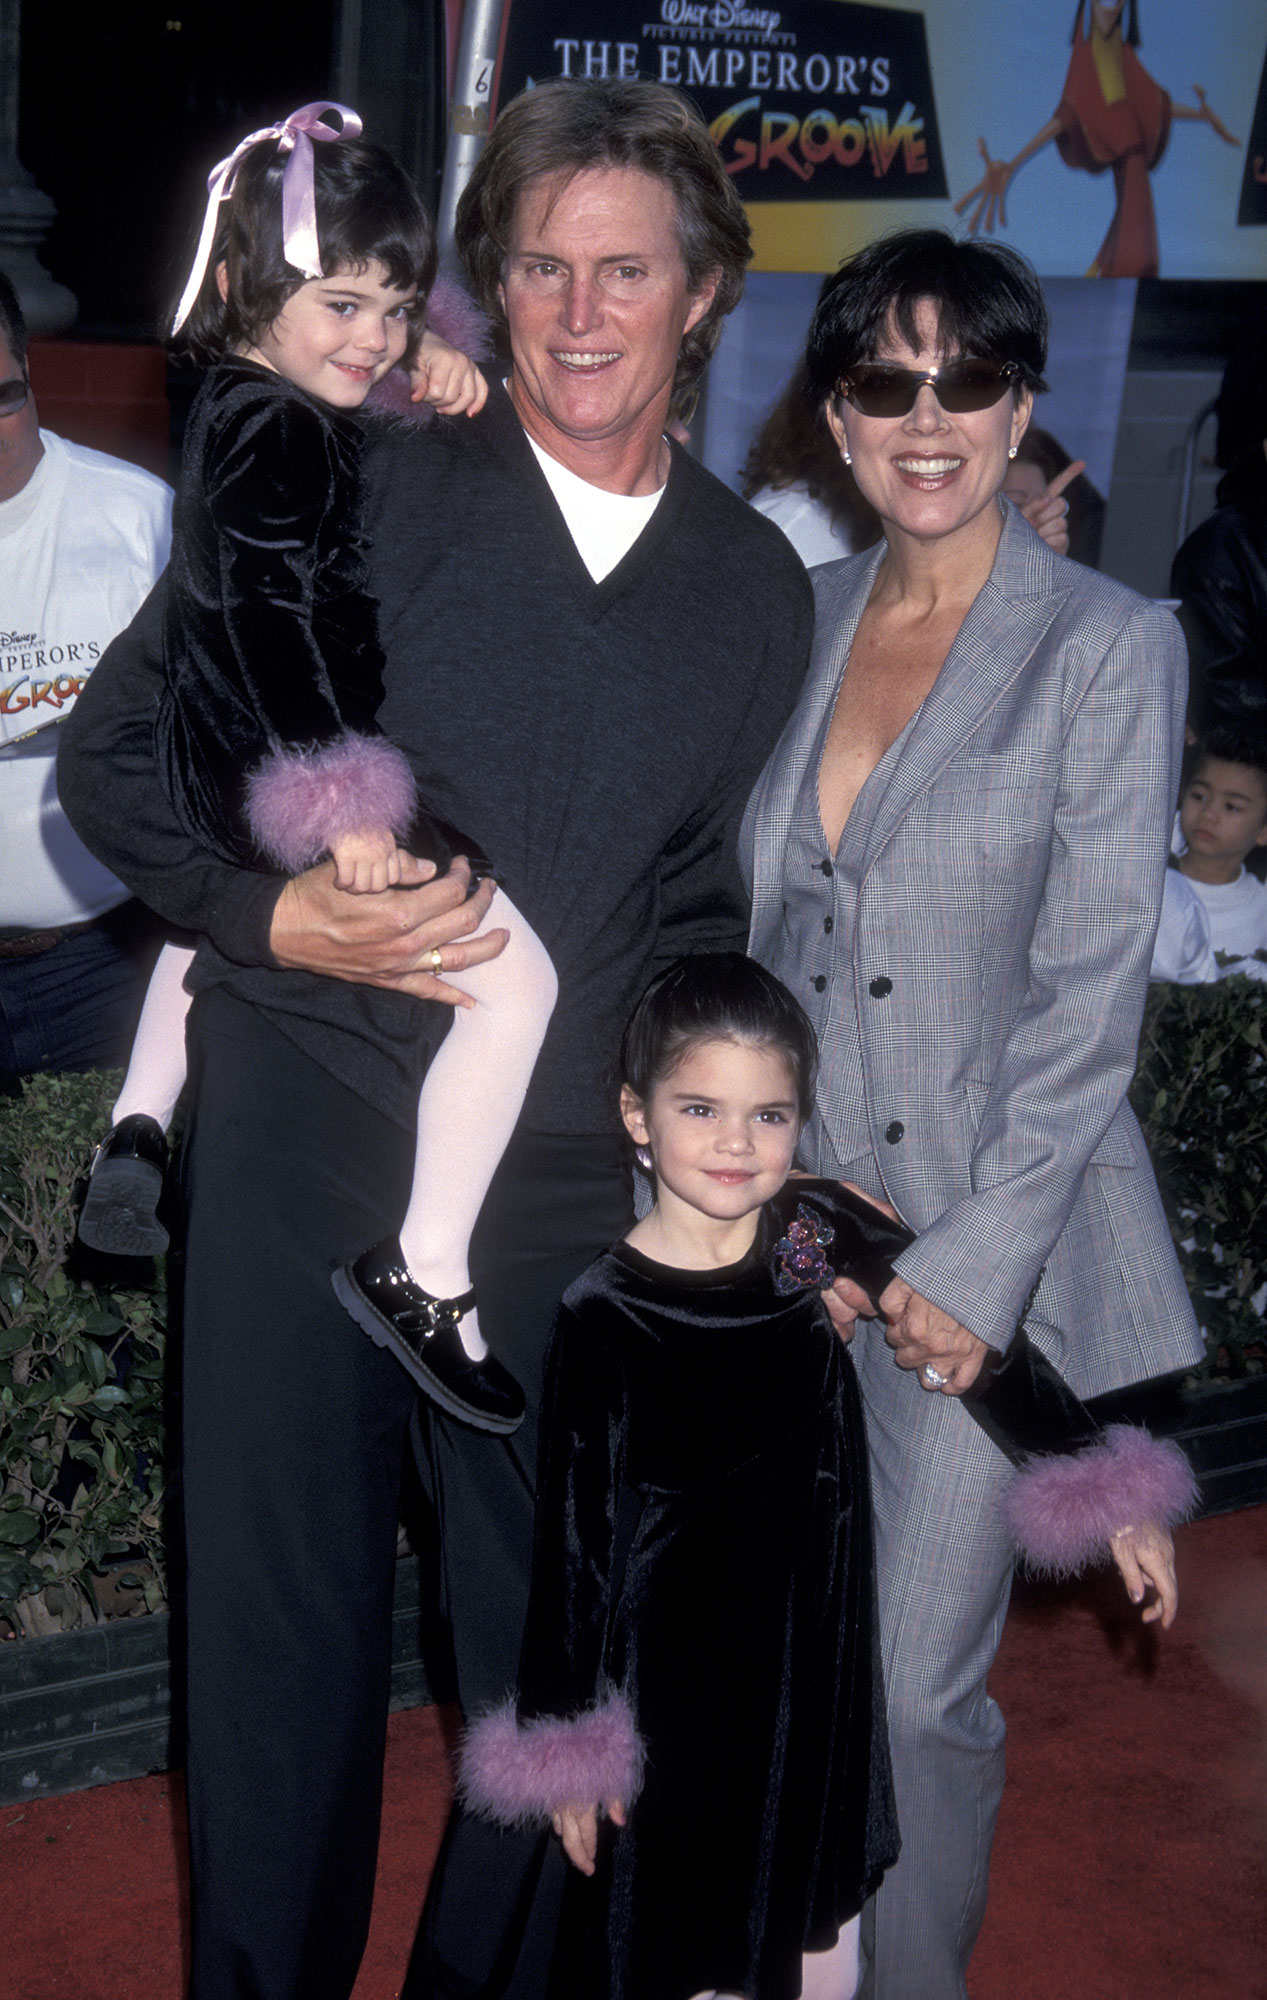 Kendall Jenner through the years - Kendall and younger sis Kylie both attended the Emperor's New Groove premiere with their parents in 2000.